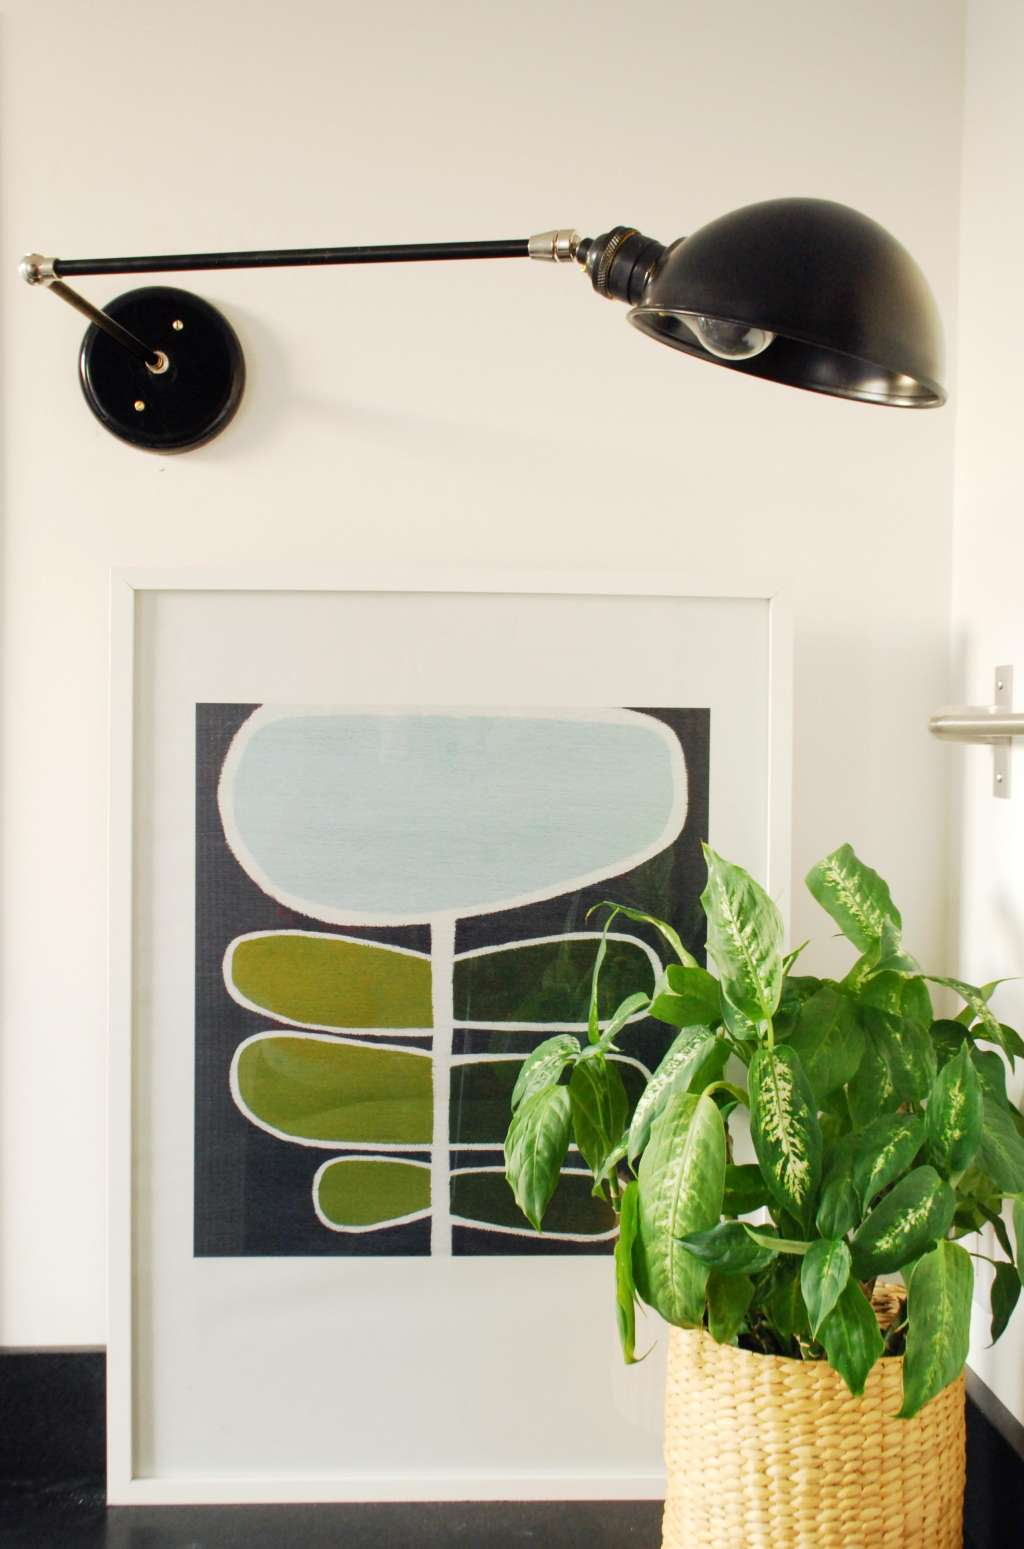 DIY Lighting Project: How To Make a Swing Arm Wall Sconce